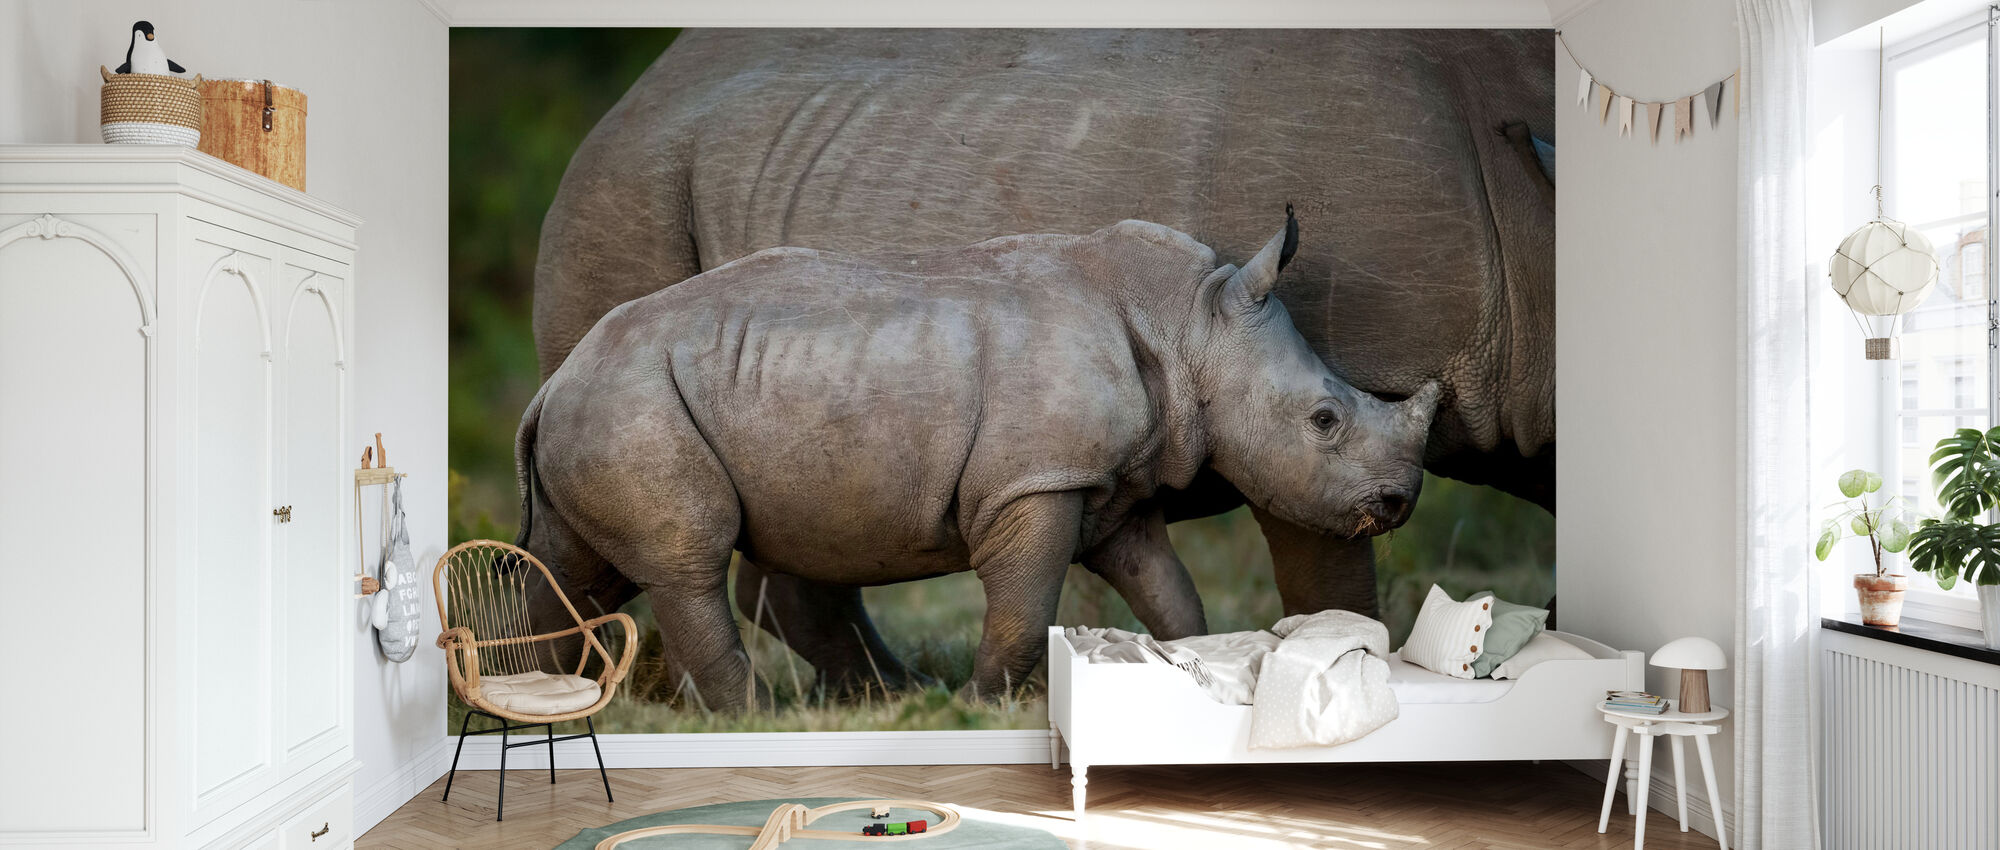 White Rhinoceros Calf with Mother - Wallpaper - Kids Room